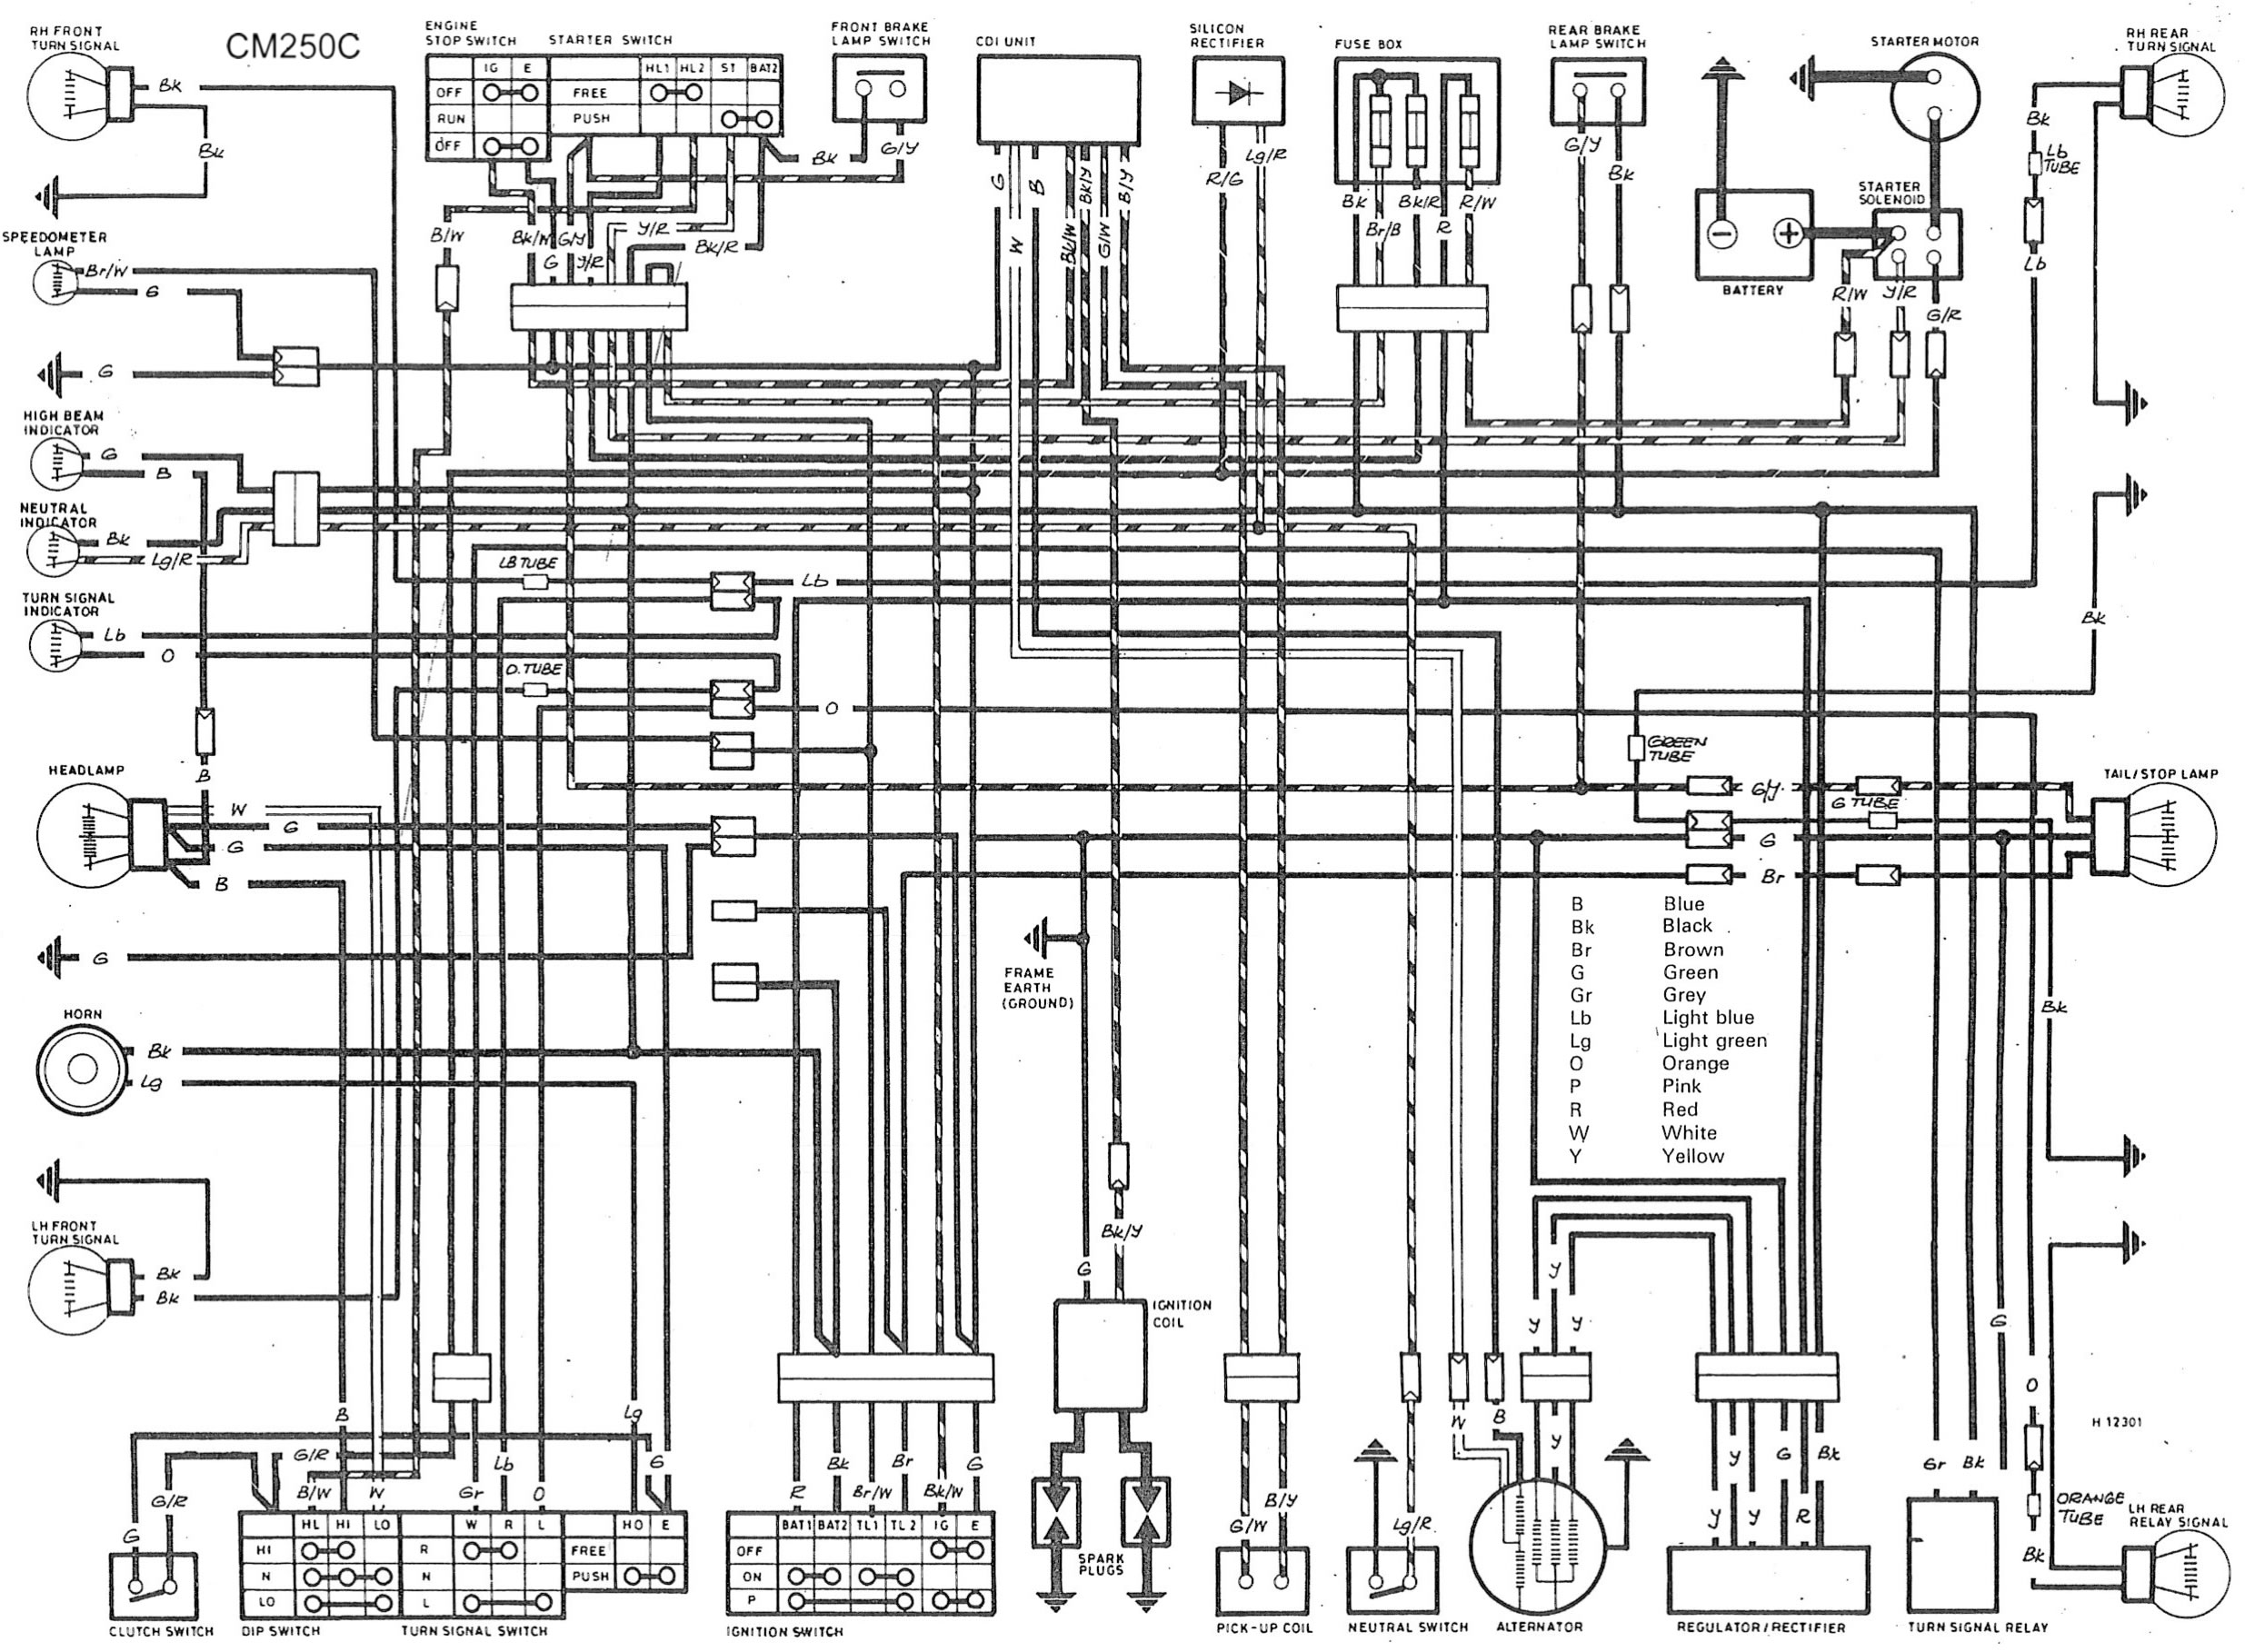 wirediagram honda cm 250 custom motorcycle (cm250c) 1982 suzuki gs550l wiring diagrams at gsmx.co